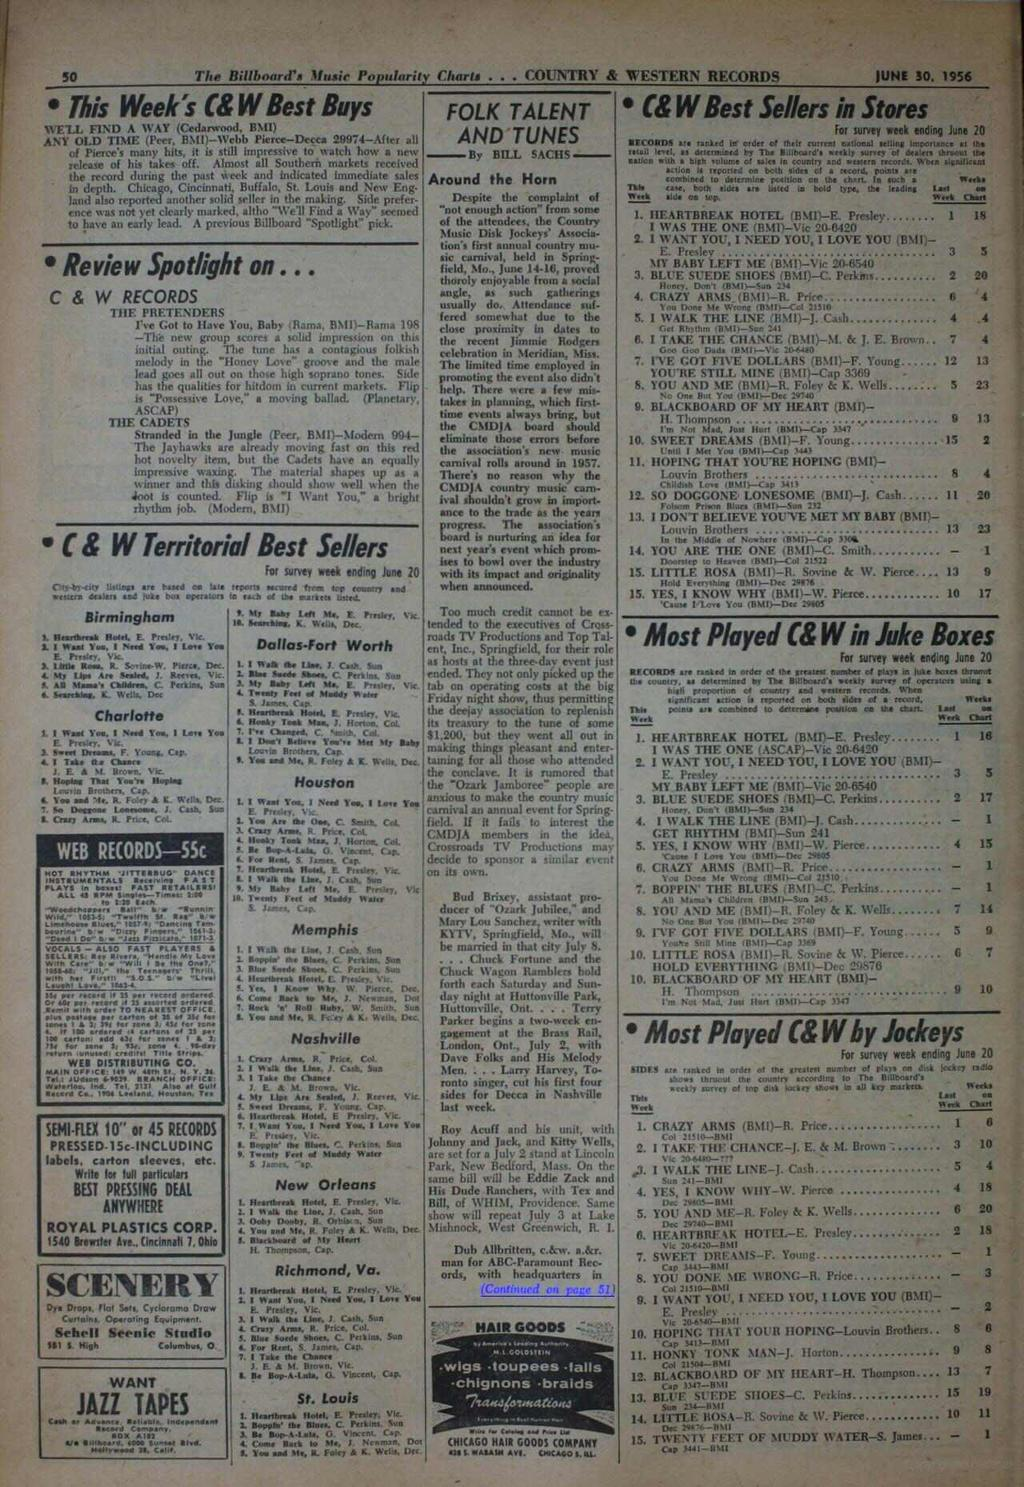 50 The Billboard's lfusir Popularity Charts COUNTRY & WESTERN RECORDS JUNE 30, 956 This Week's (& W Best Buys WE'LL FND A WAY (Cedarwood, BM) ANT OLD TME (Peer, BM) -Webb Pierce -Decca 29974 -After